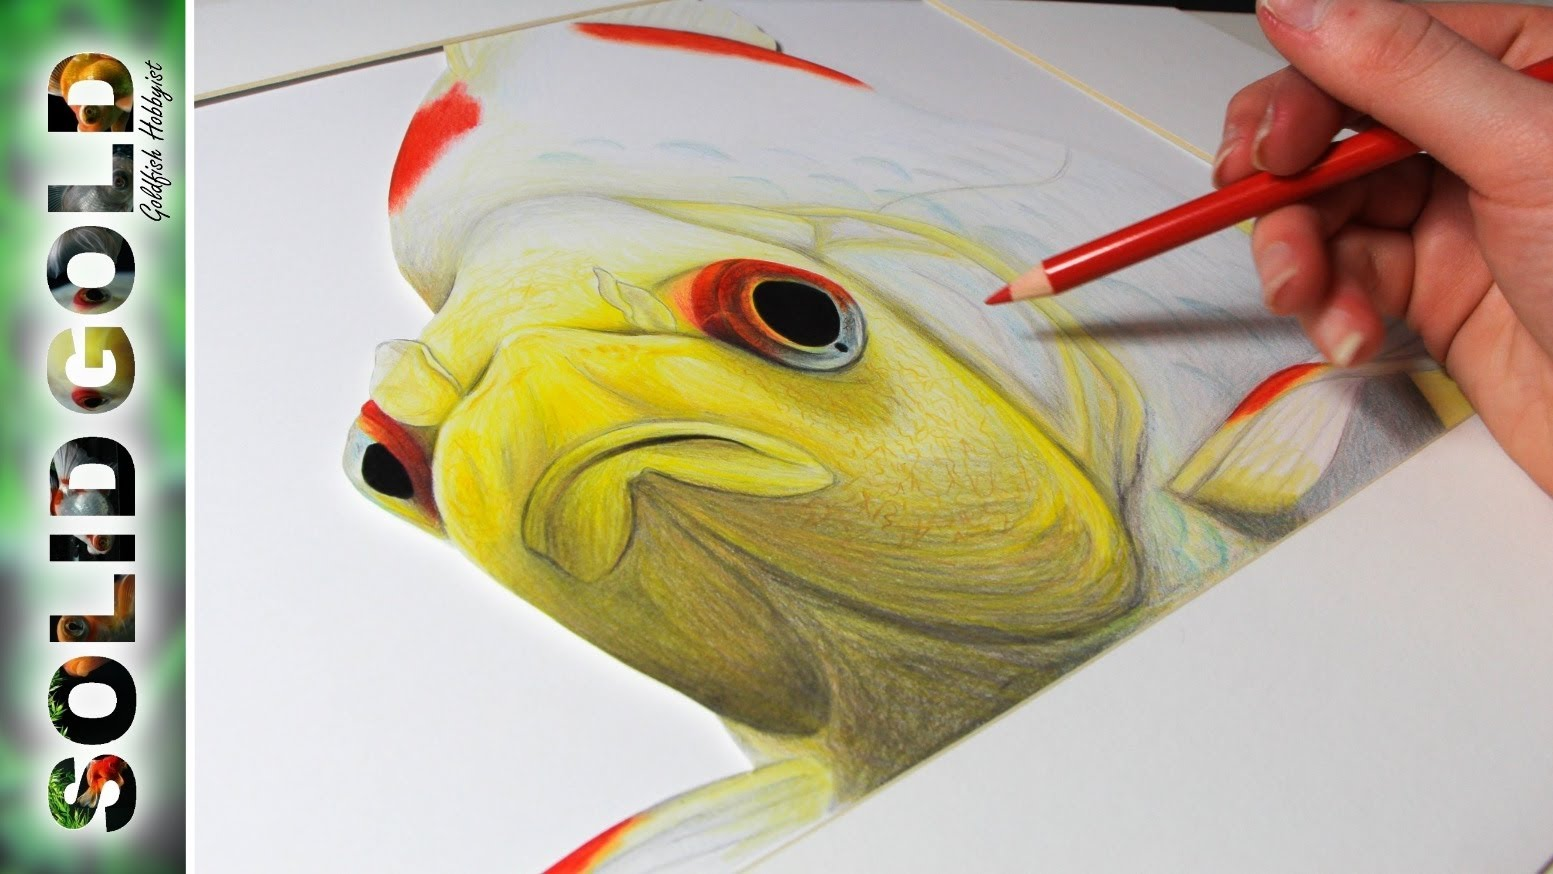 Drawn goldfish golden fish YouTube Solid Drawing Gold